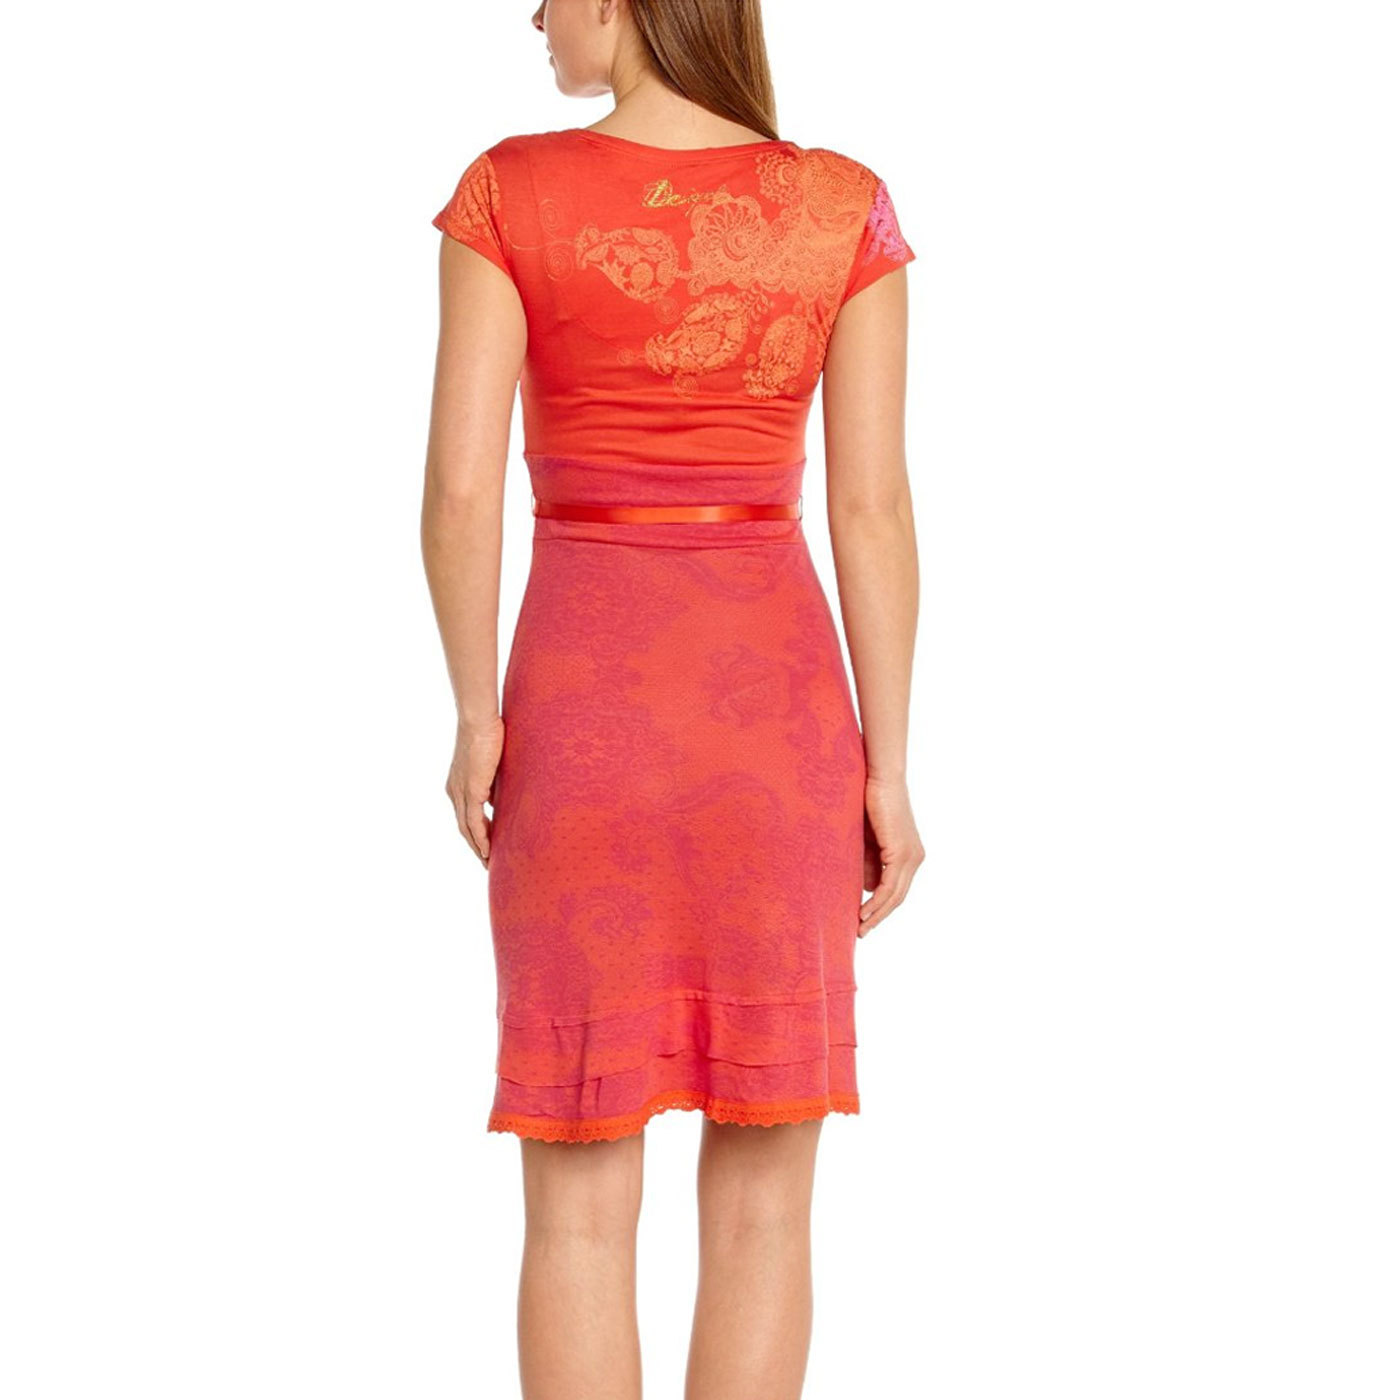 Find great deals on eBay for xl dresses. Shop with confidence.